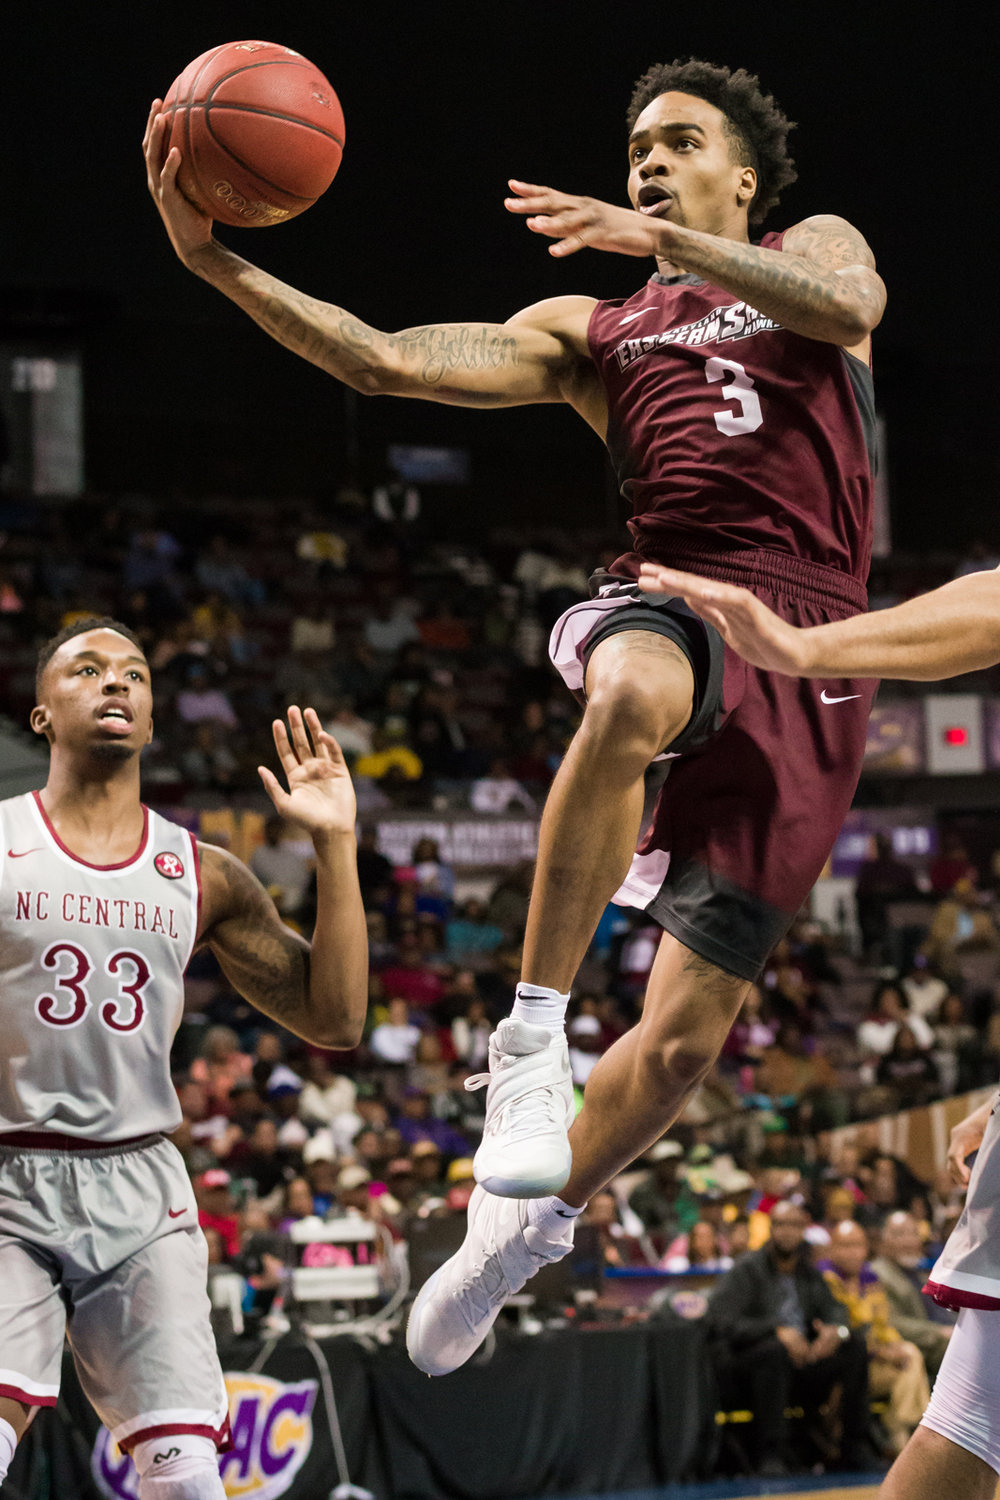 North Carolina Central Eagles guard Rashaun Madison (3) goes up for a shot against the North Carolina Central Eagles during the 2017 MEAC Tournament held at the Scope Arena in Norfolk, VA. North Carolina Central defeated Maryland Eastern Shore 77-49.